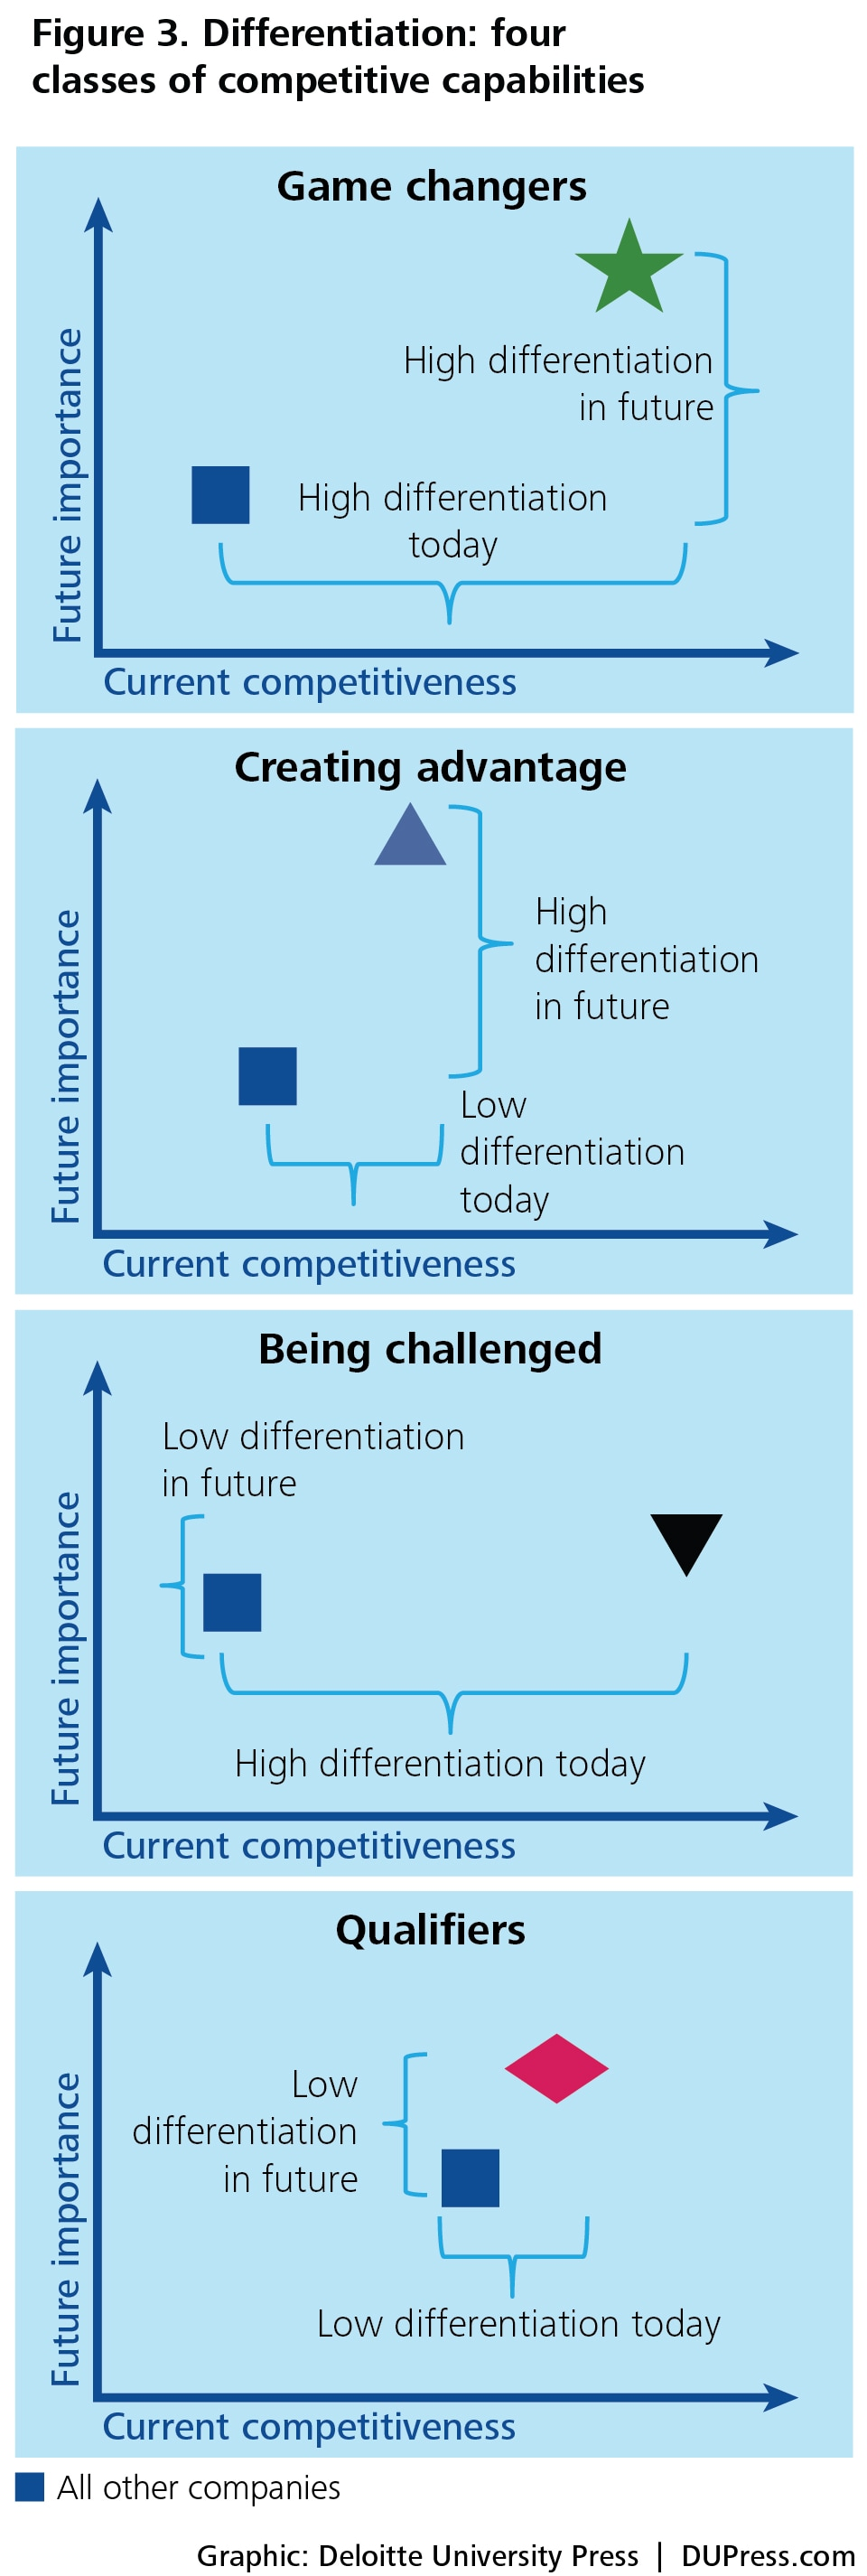 Figure 3. Differentiation: four classes of competitive capabilities